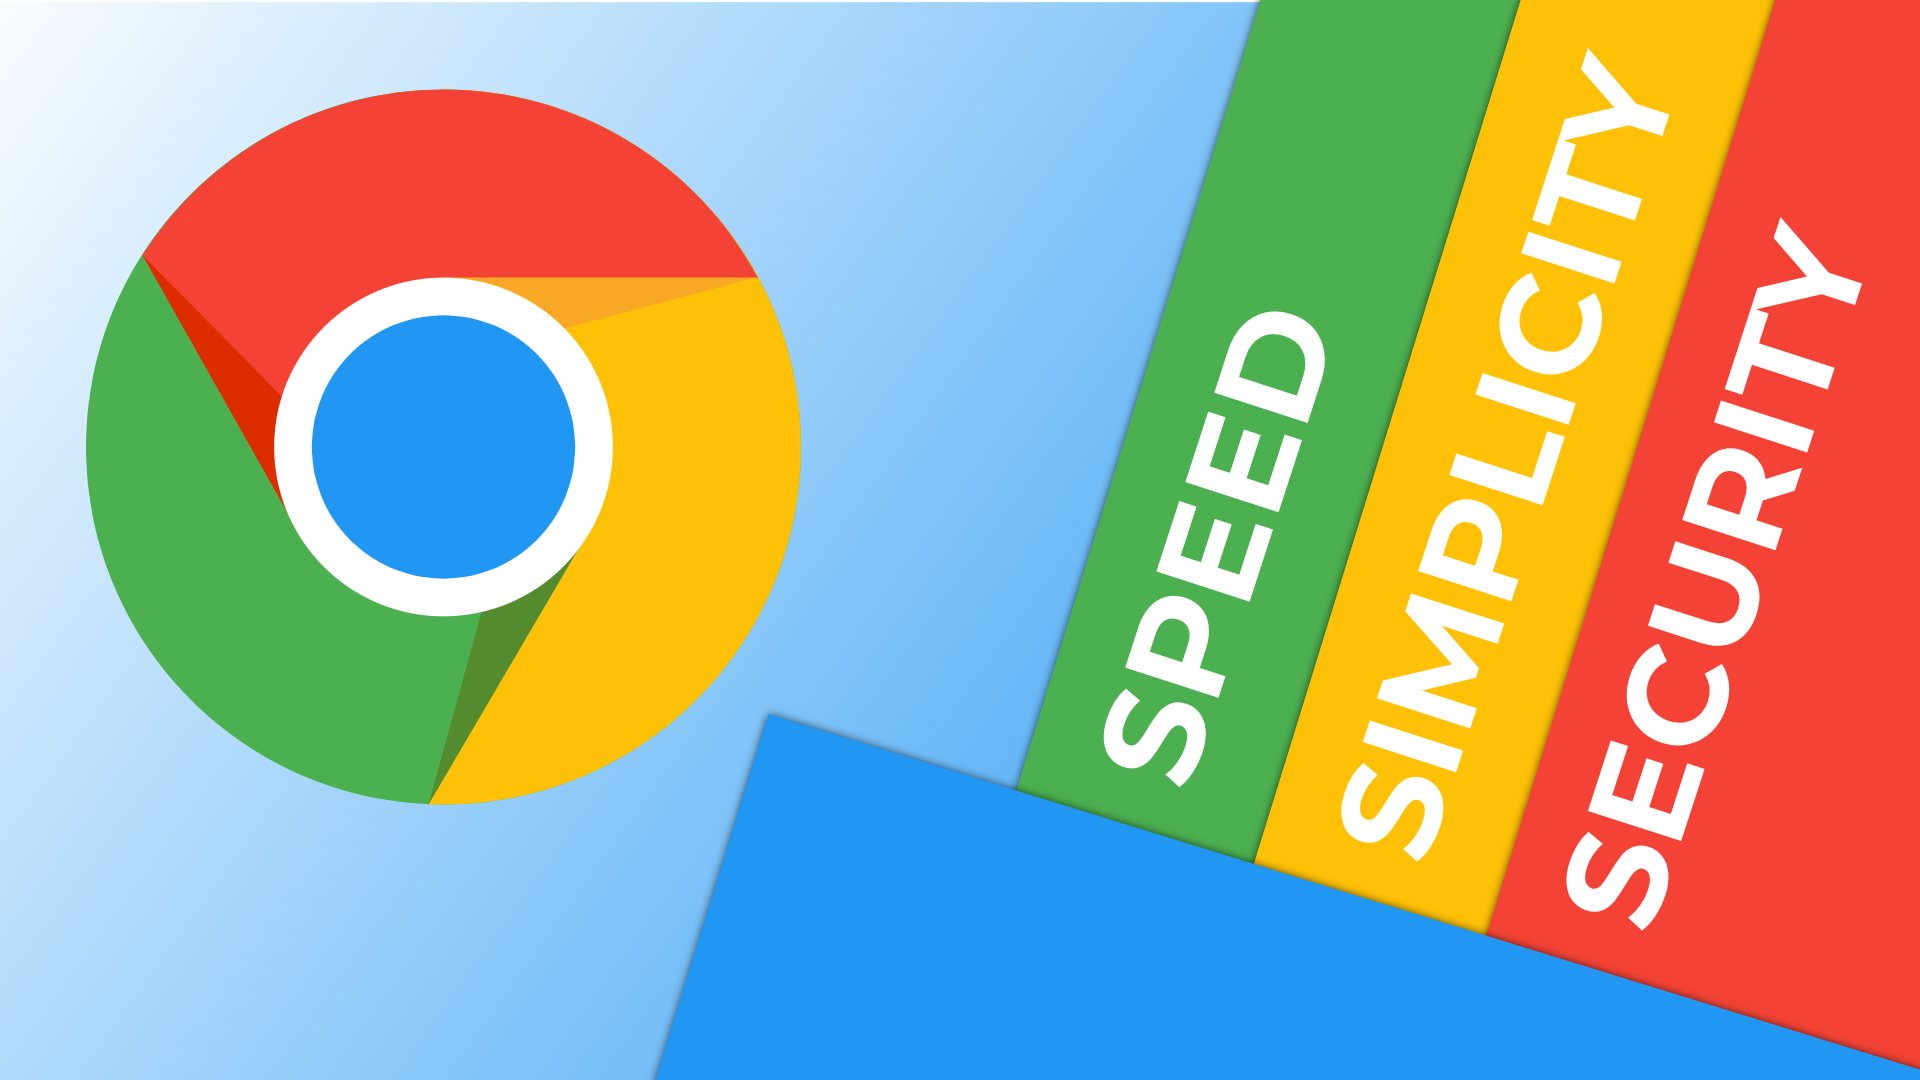 Why Chromebook simplicity isn't undermined by more capability and complexity